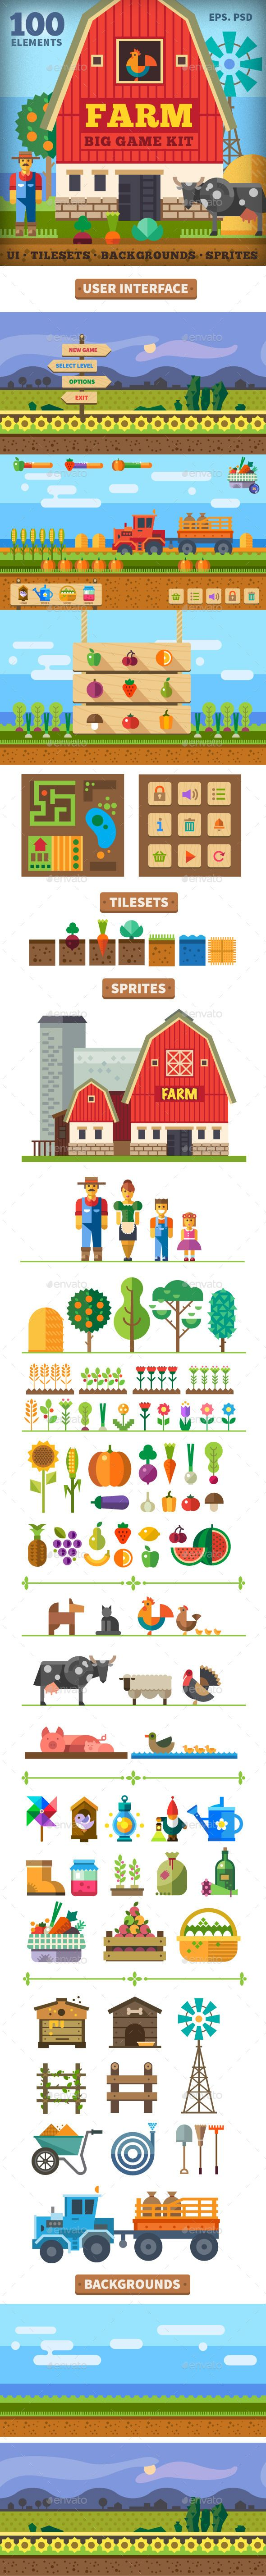 Farm in the Village. Big Game Kit in Flat Style Download here: https://graphicriver.net/item/farm-in-the-village-big-game-kit-in-flat-style/10107188?ref=KlitVogli